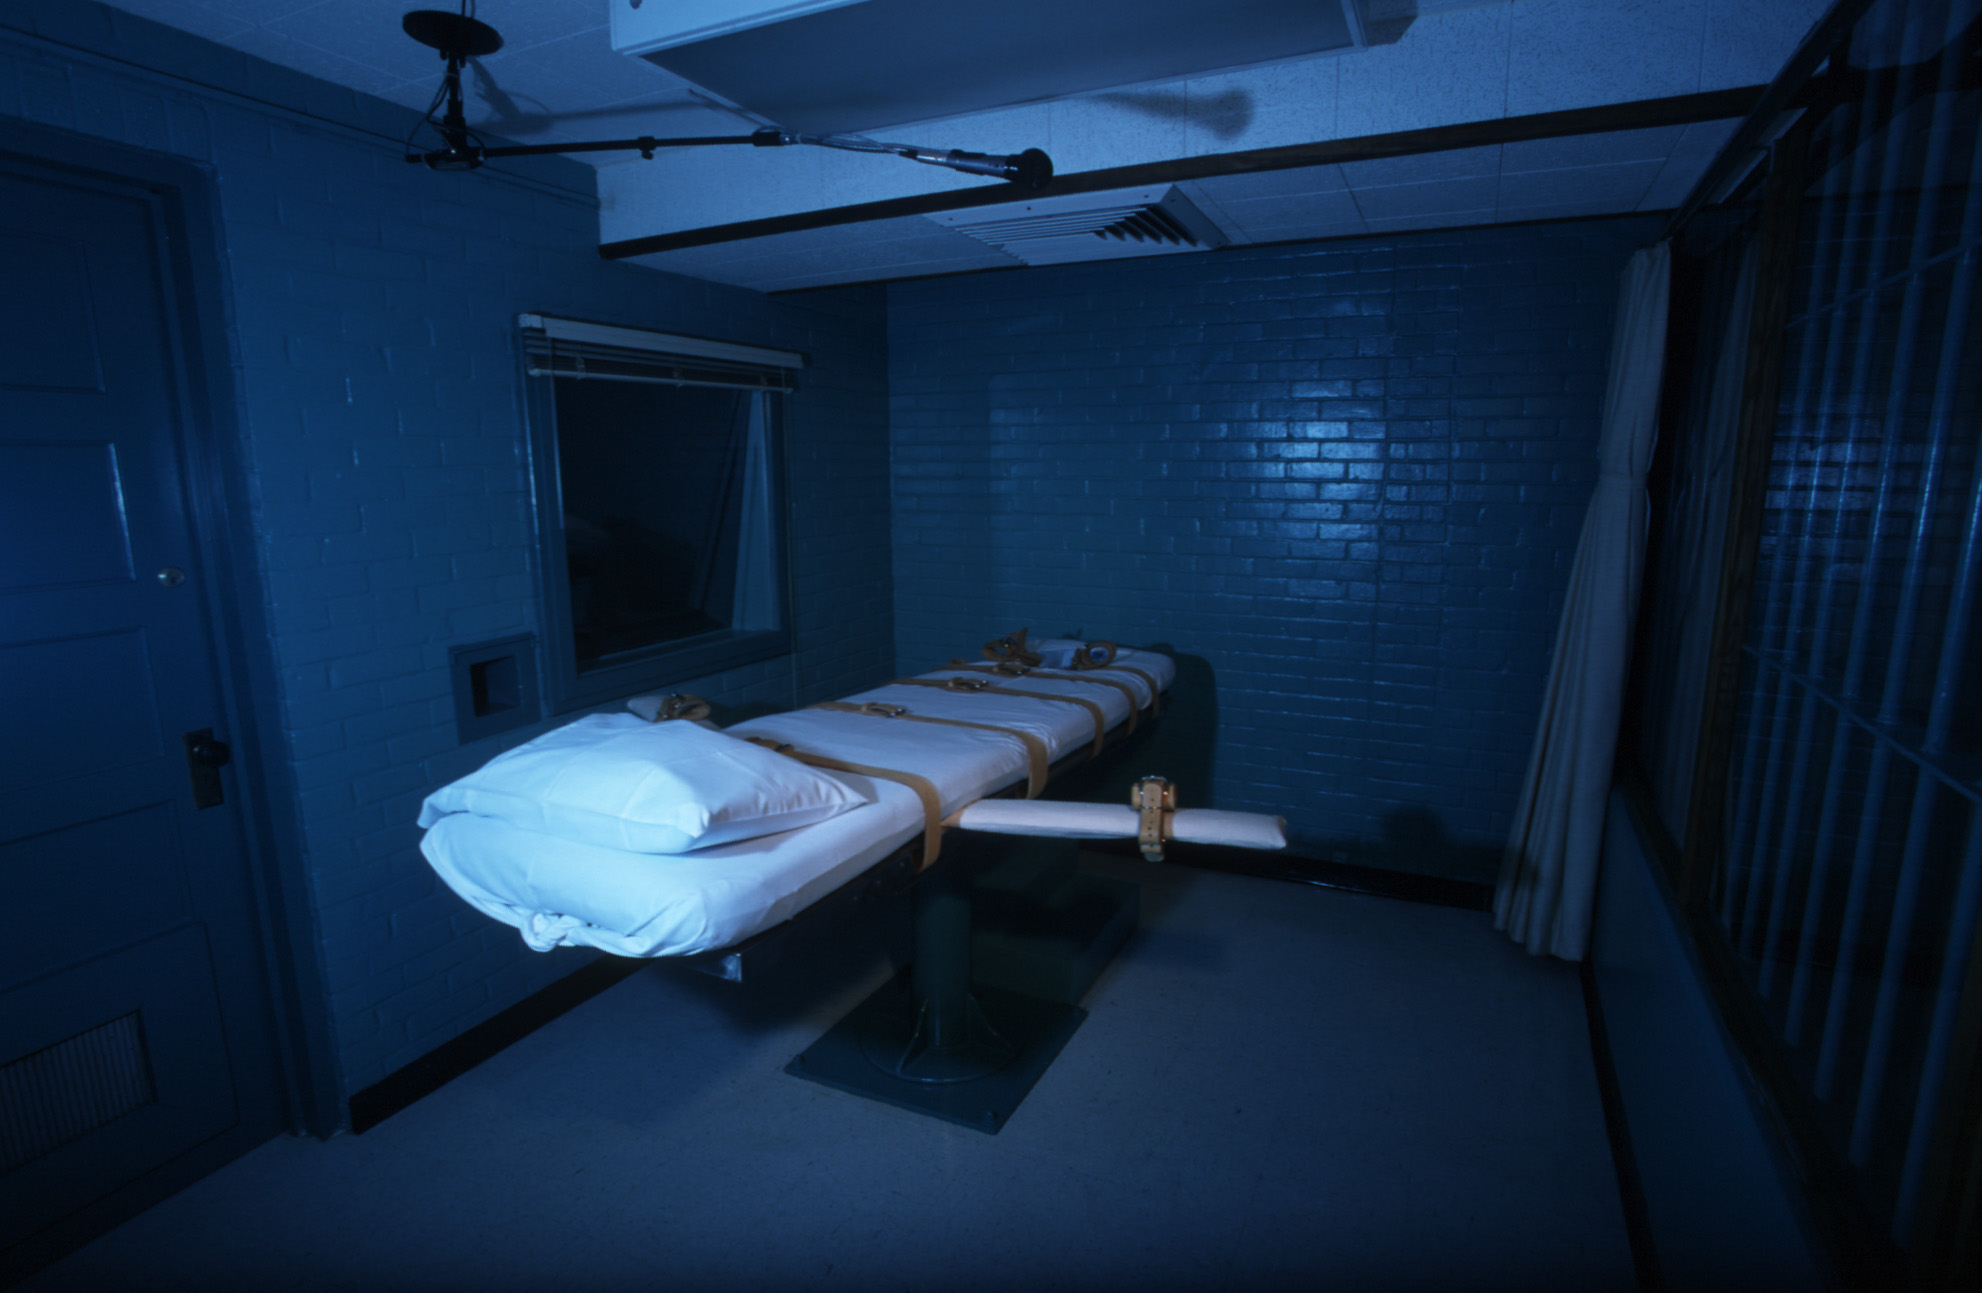 A US death chamber.